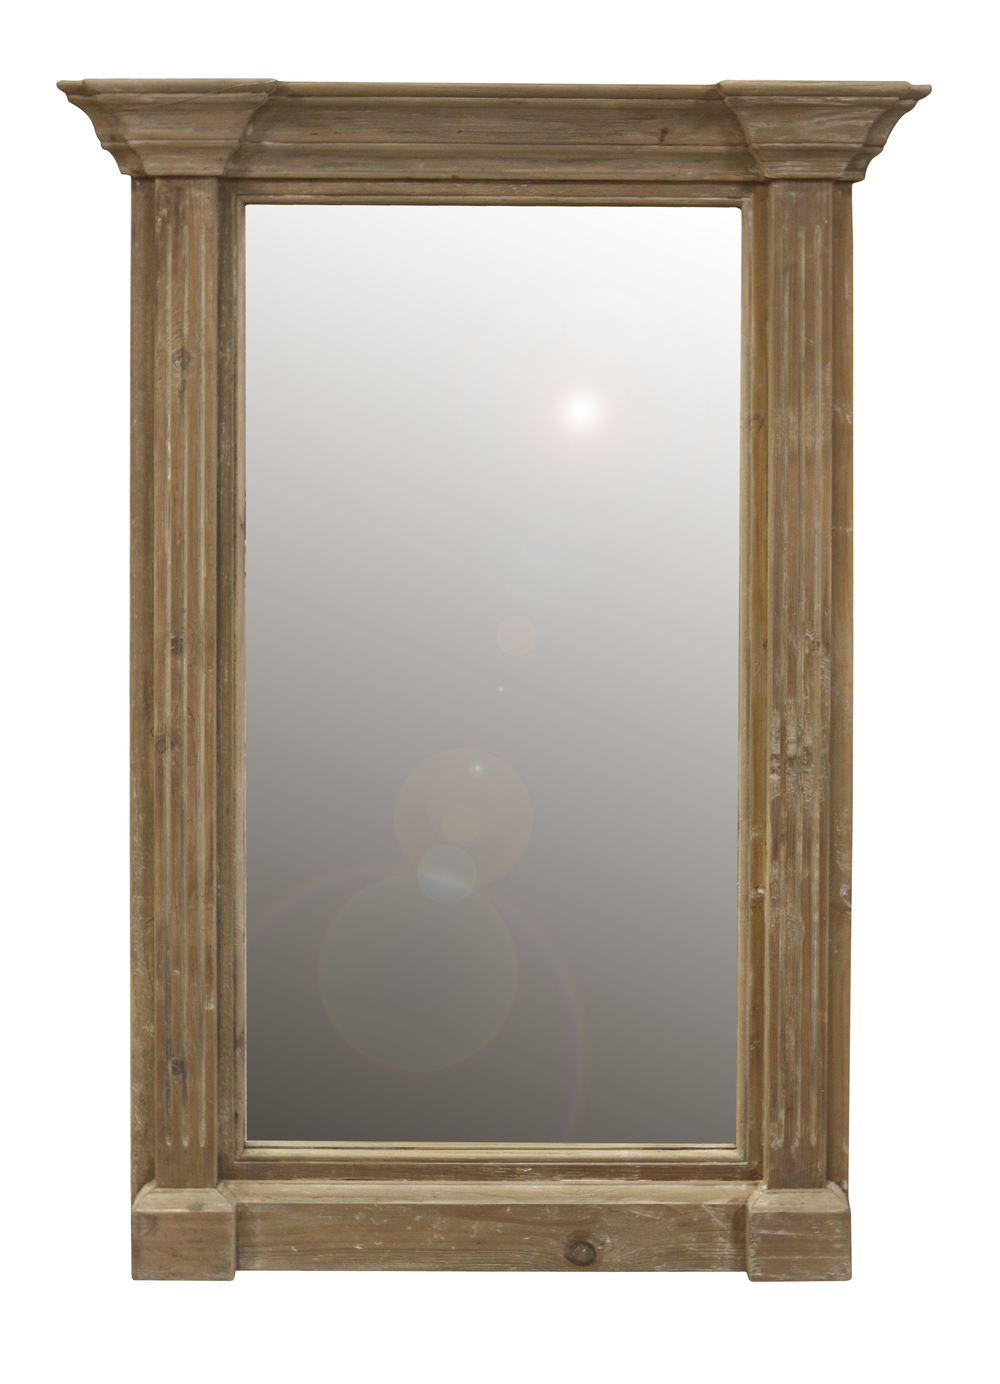 GJ Styles - Wall Mirror, Washed Pine